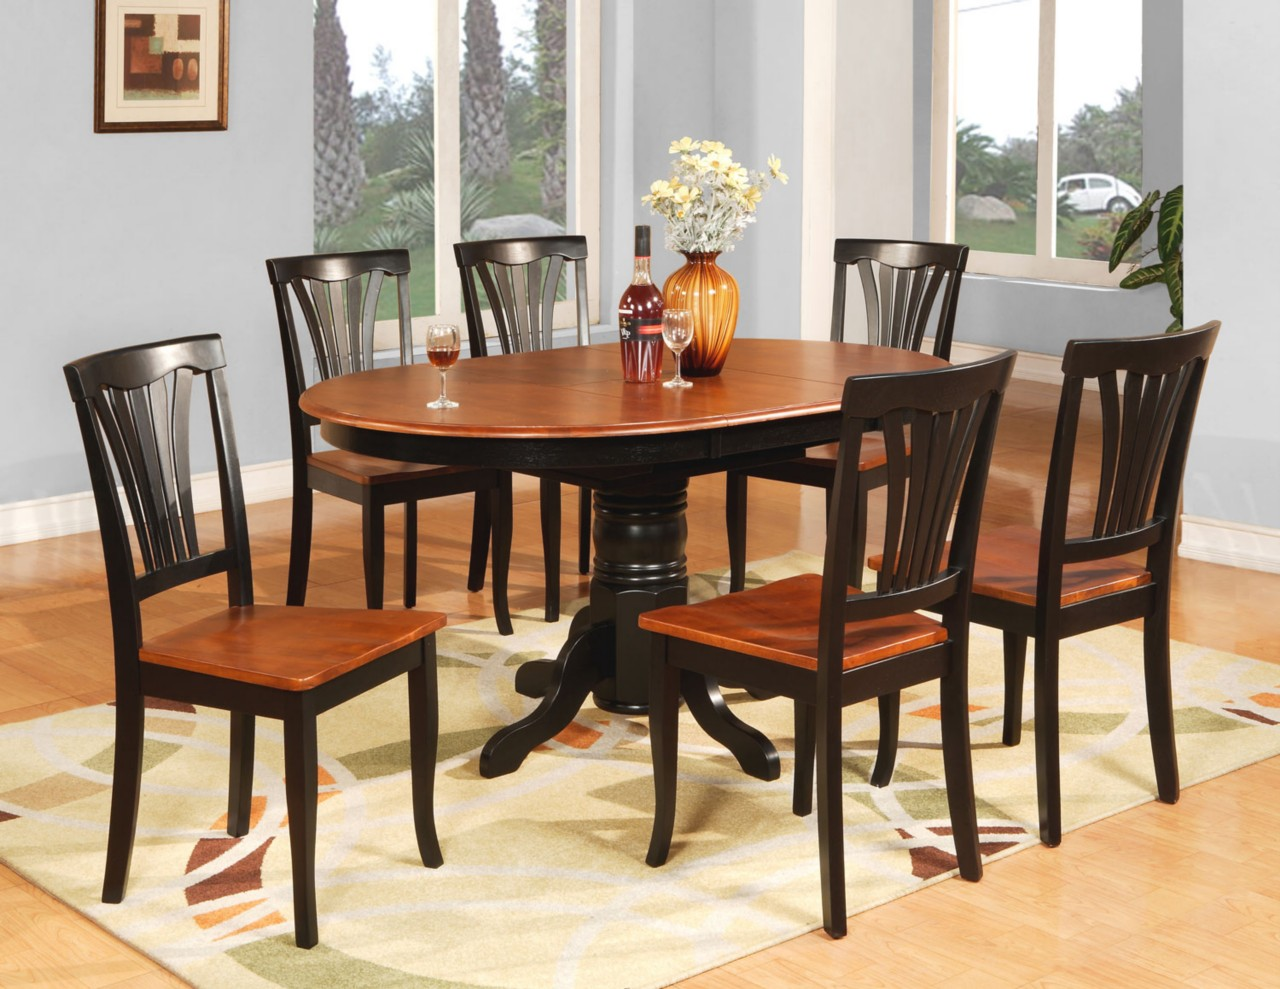 7 pc oval dinette kitchen dining room table 6 chairs ebay for Dining room furniture